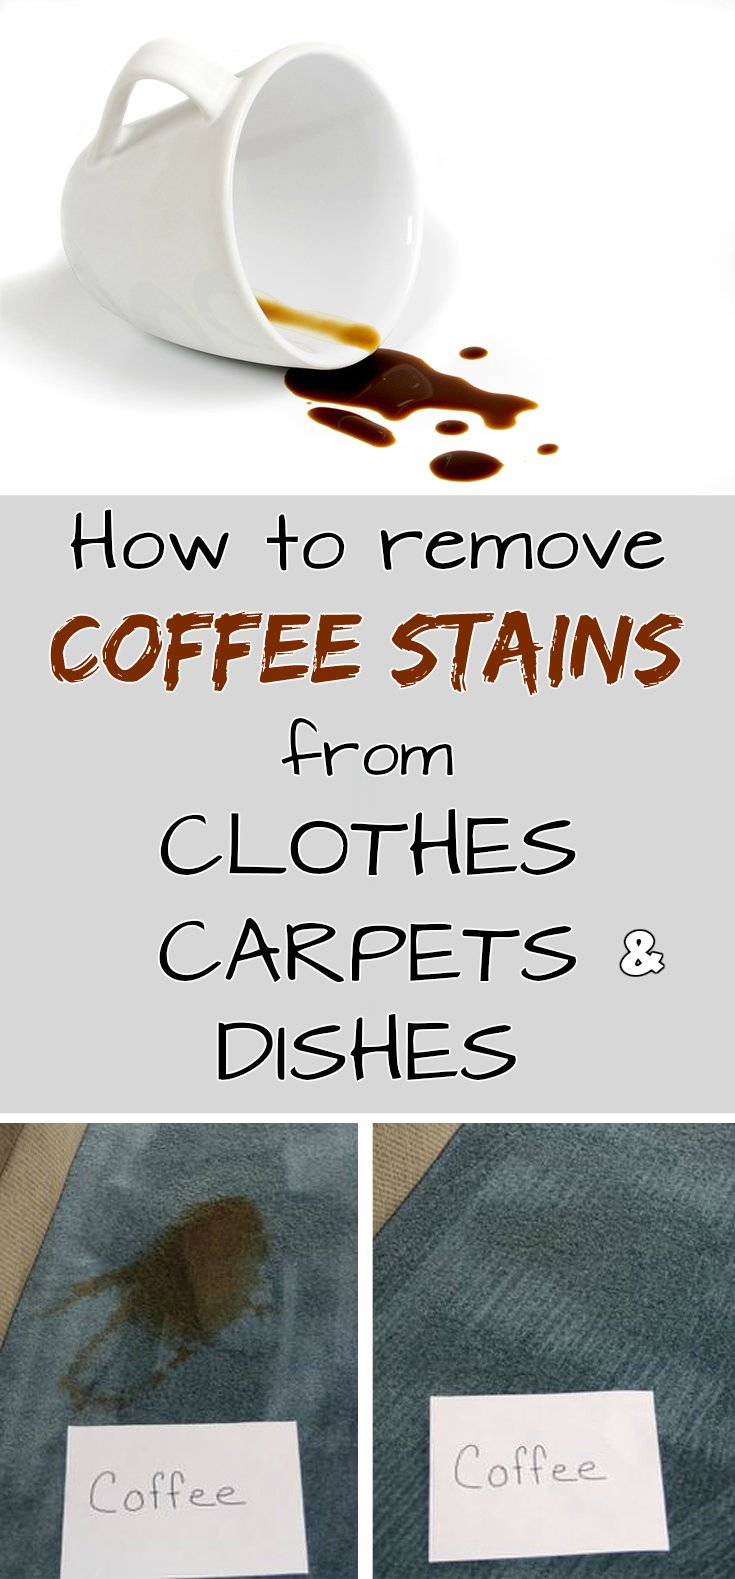 How to remove coffee stains from clothes carpets and for How to get a coffee stain out of a shirt